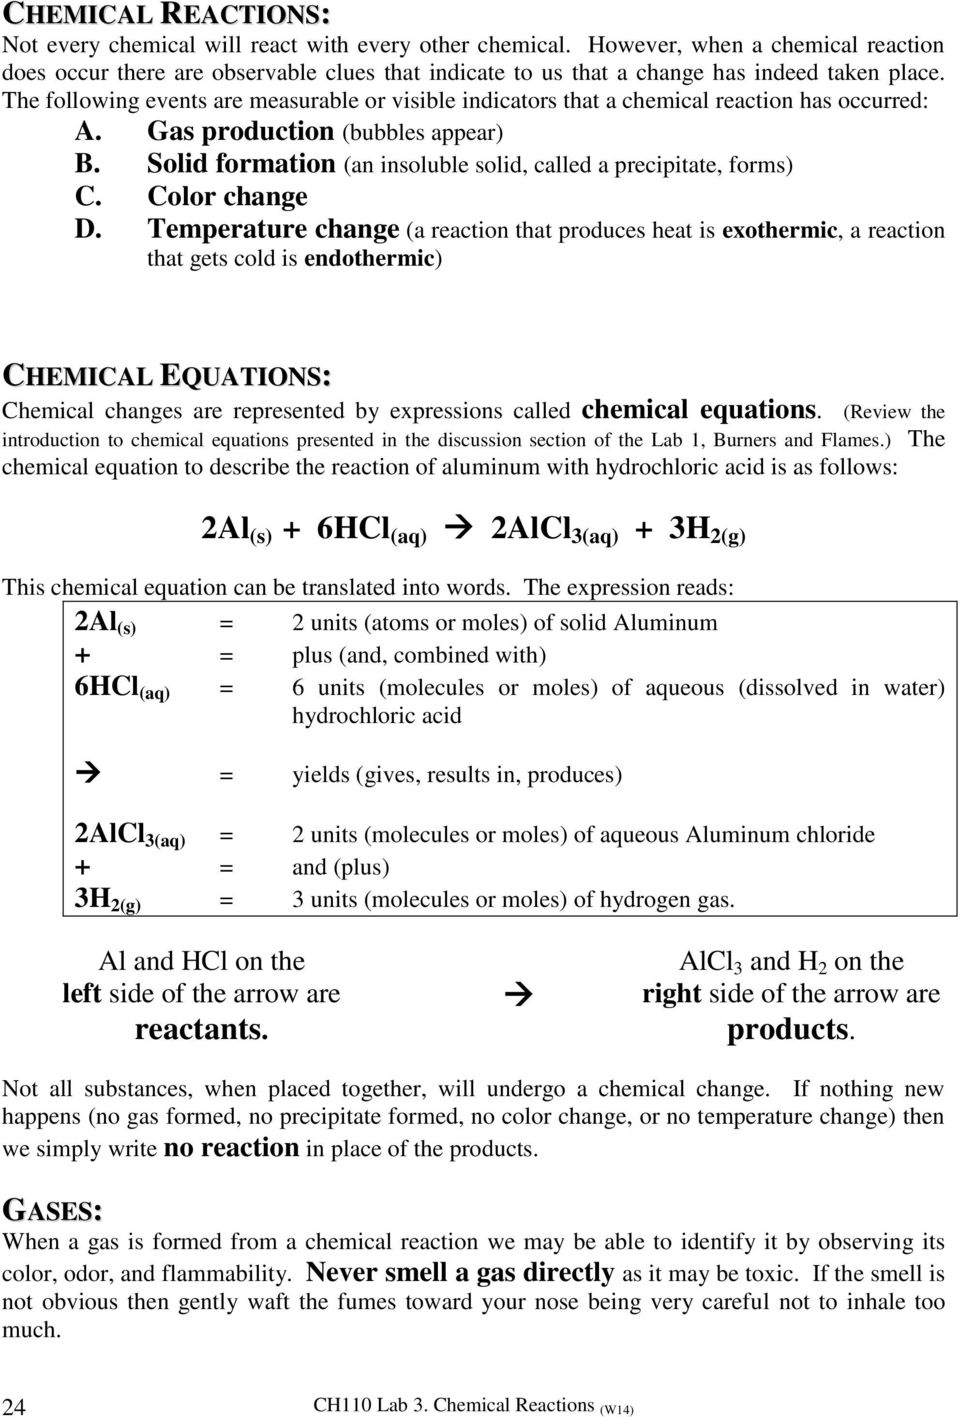 lab 3 ionic reactions Chemical reactions: helpful hints you need to report the balanced net ionic equations for each your reactions your balanced net ionic equation should be consistent with your recorded observations reaction 3 is a classic acid-base reaction.